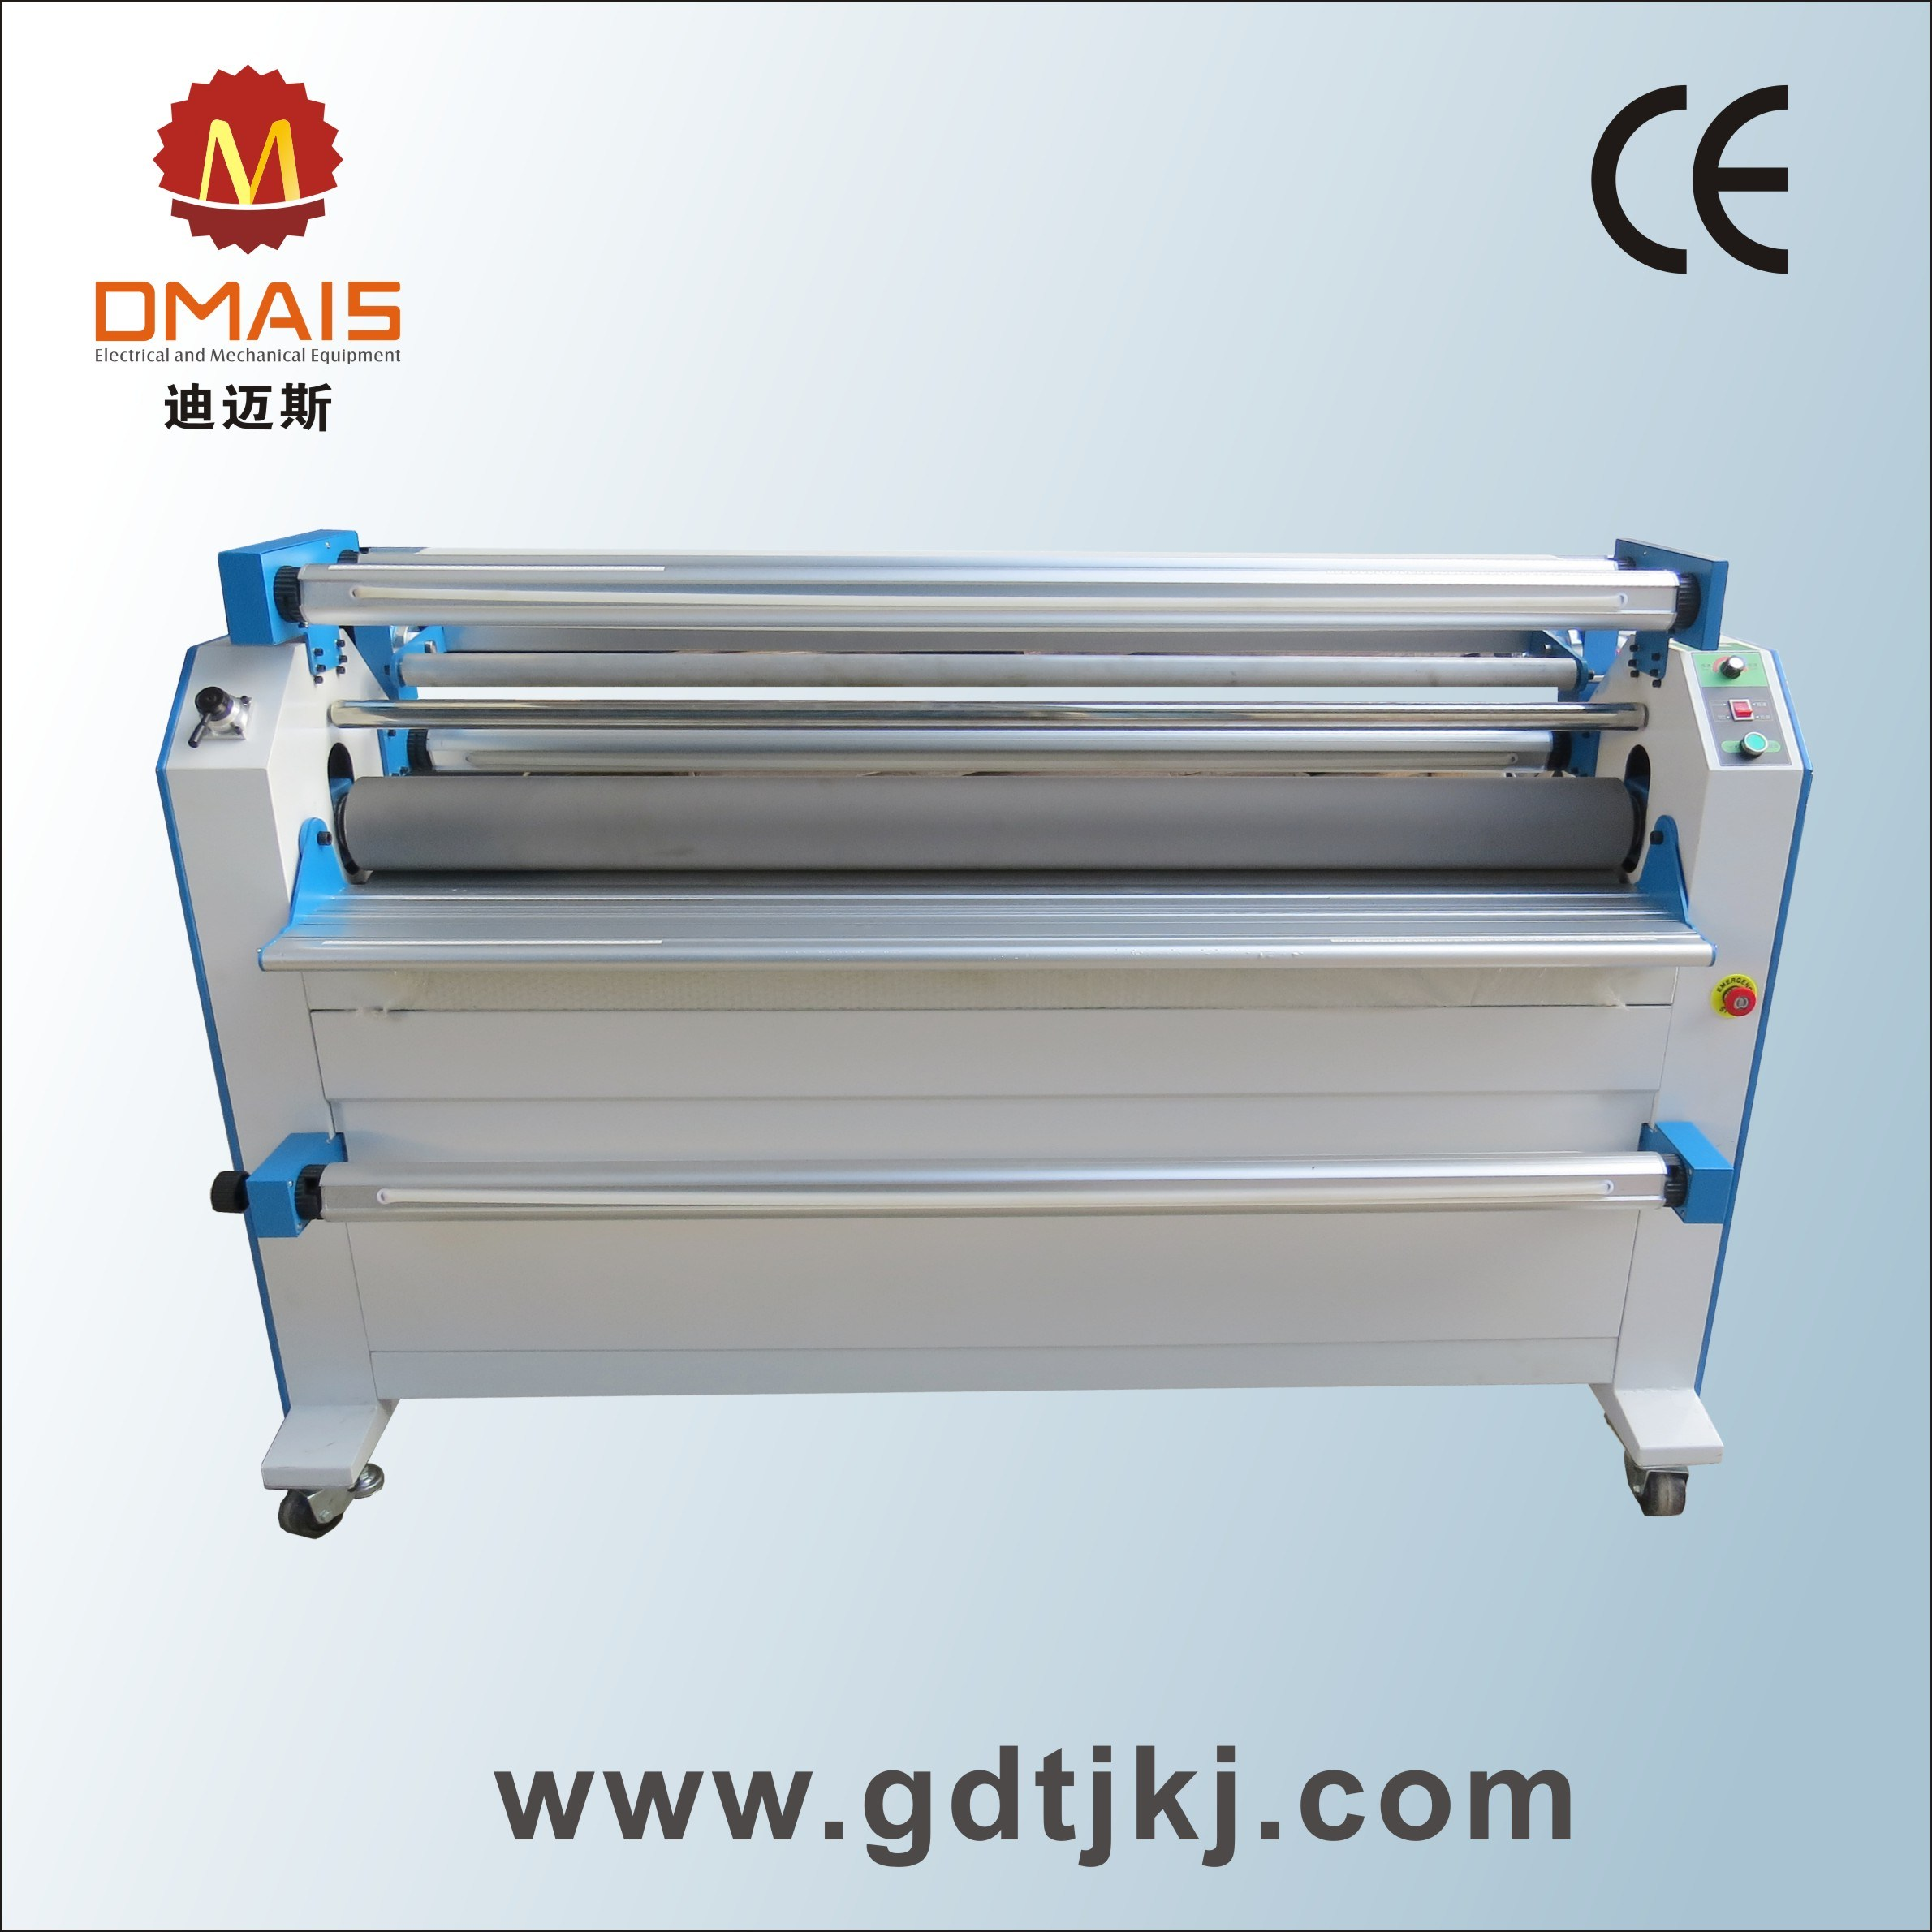 "Dmais 1.6m (63"") Wide Format Laminator with Cutting"